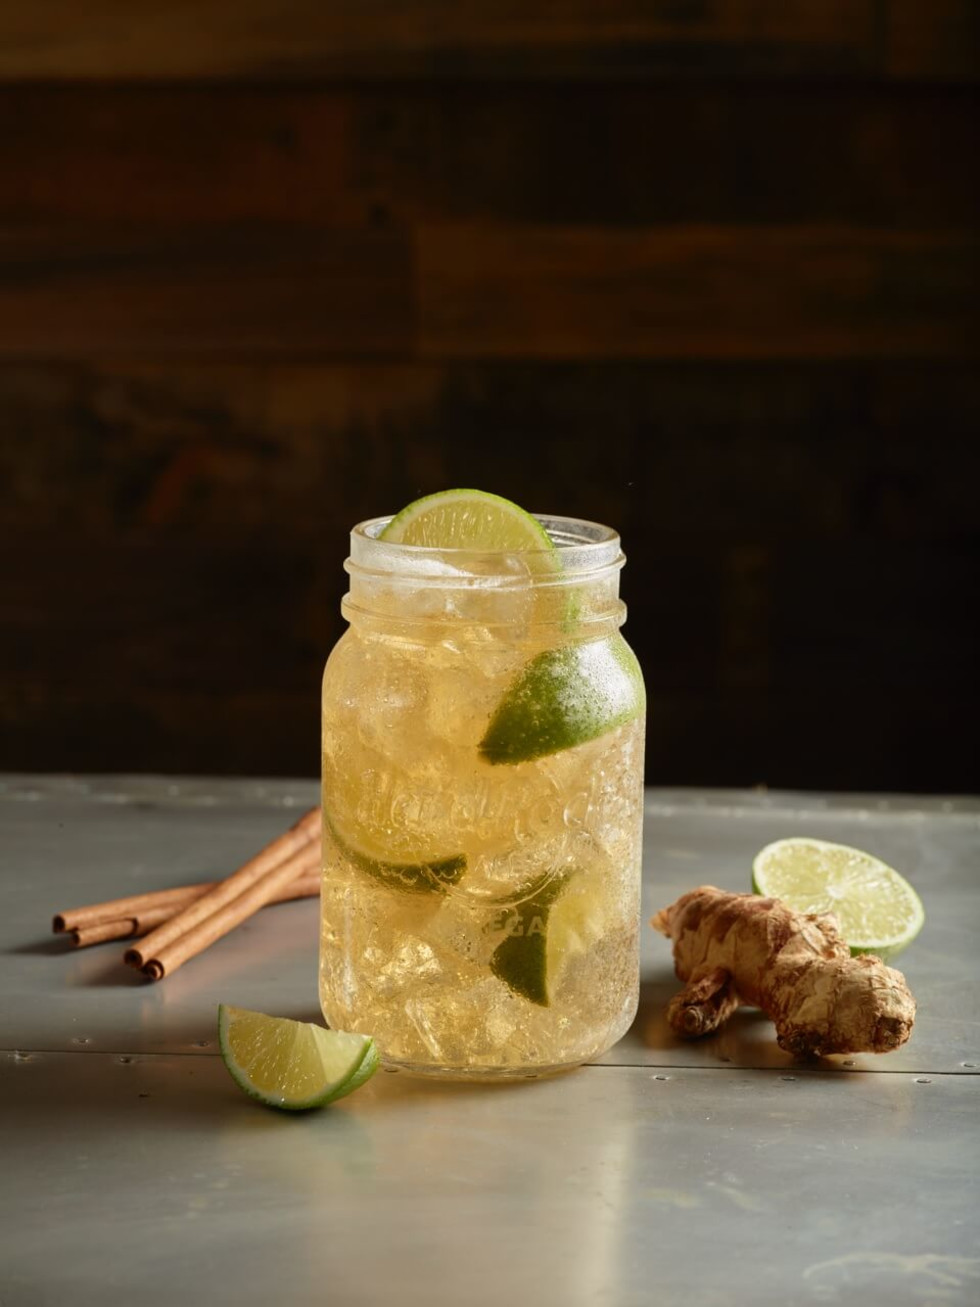 Spiced cinnamon mule at Hard Rock Cafe